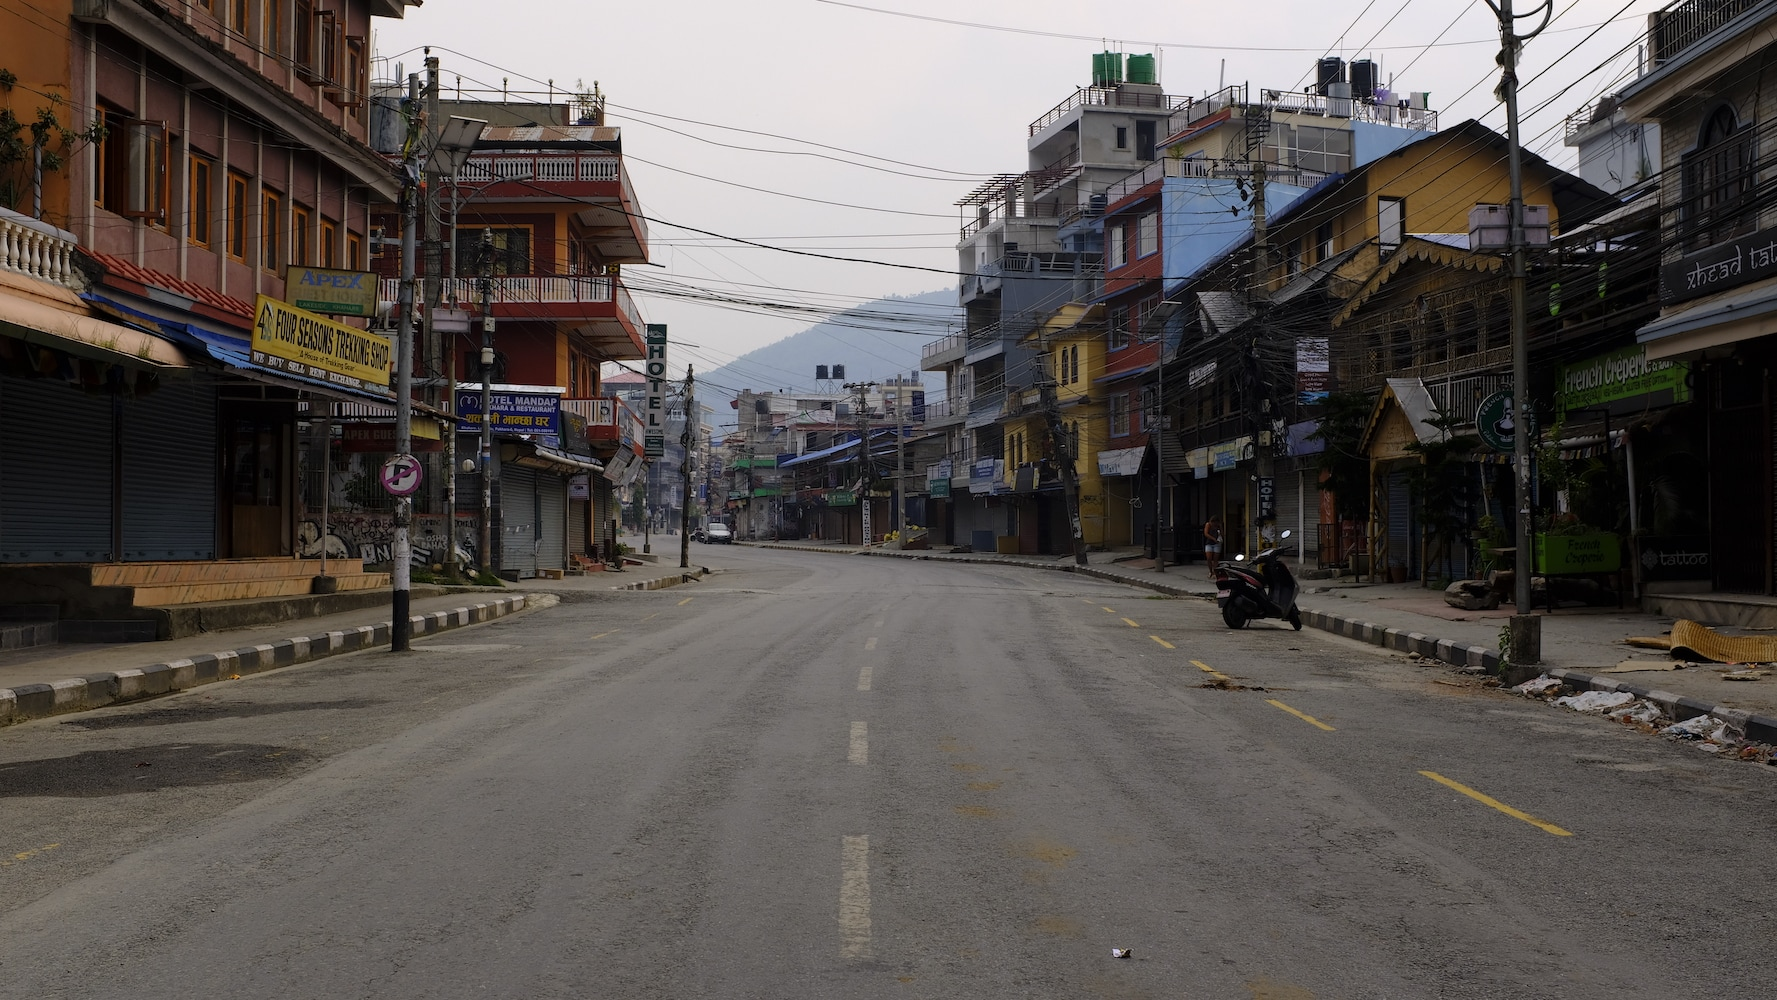 Empty street of Pokhara during Covid-19 lockdown